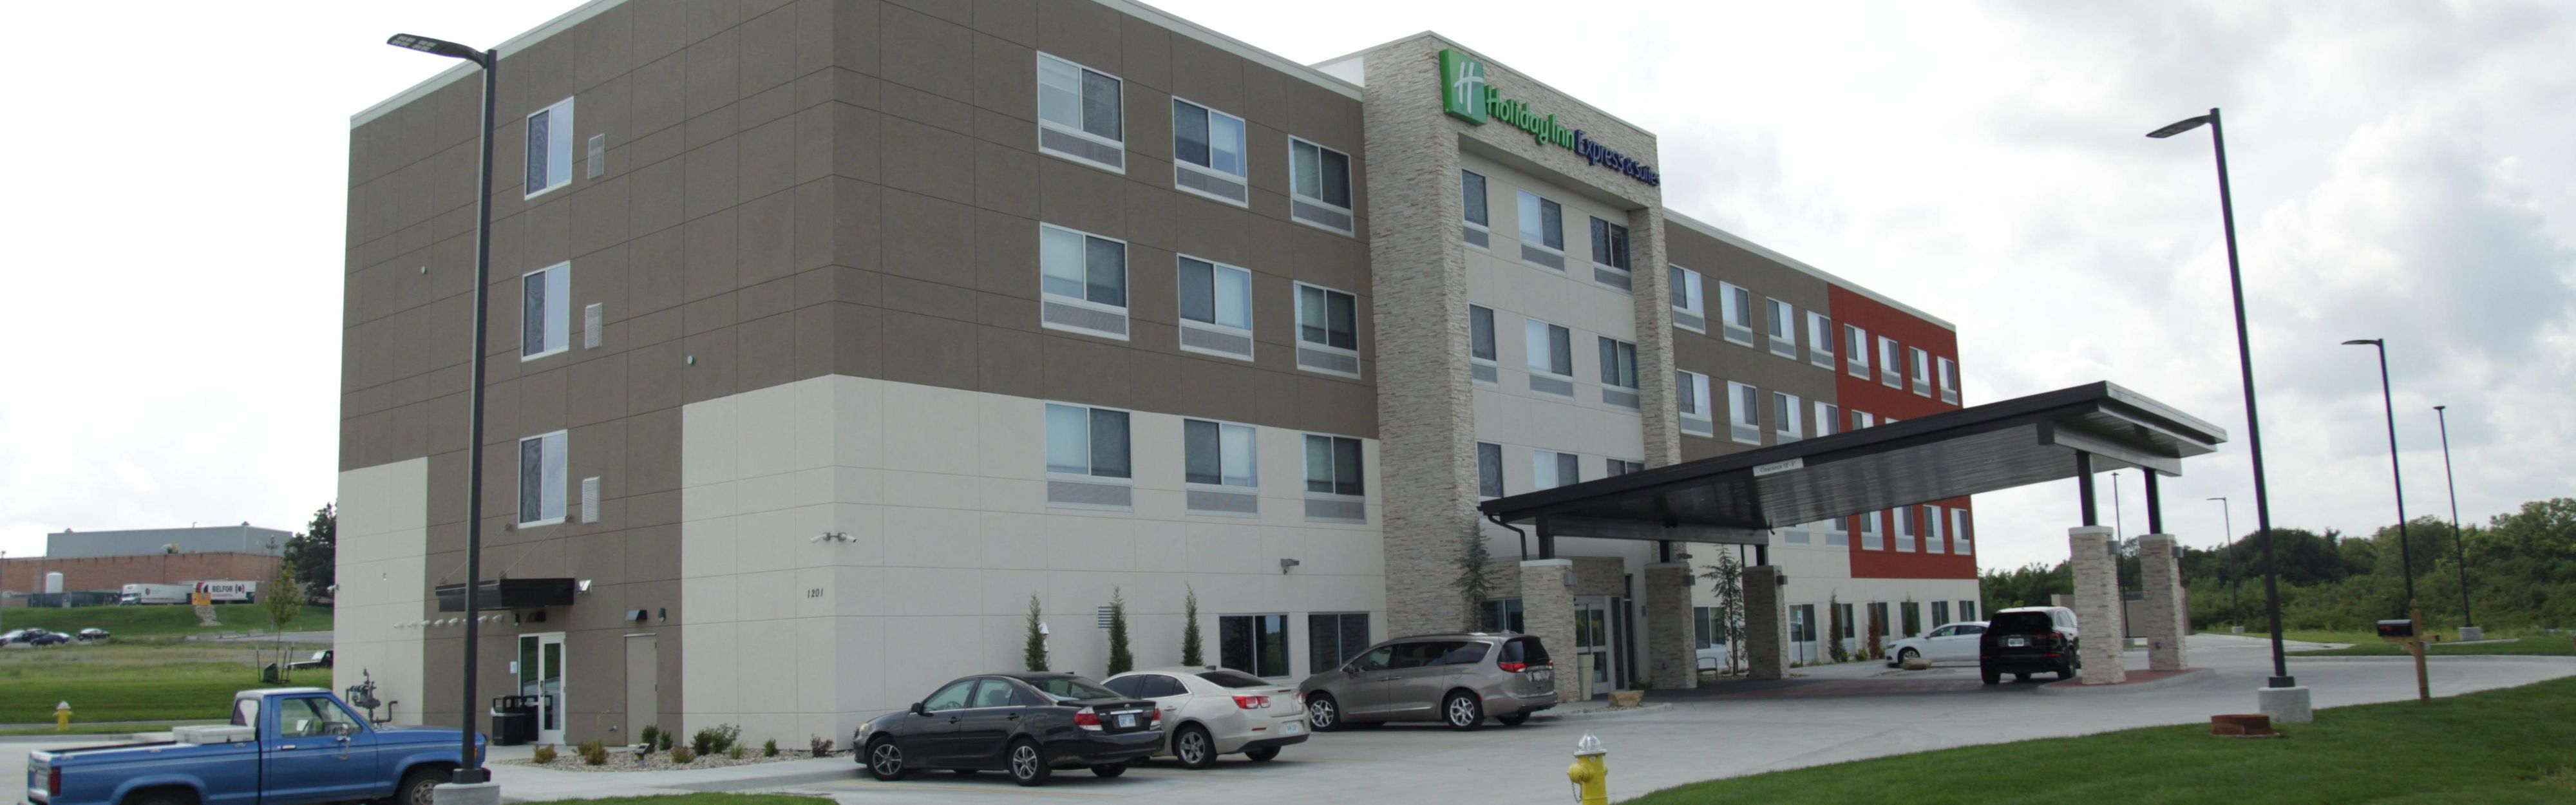 Holiday Inn Express & Suites Lee's Summit - Kansas City image 0